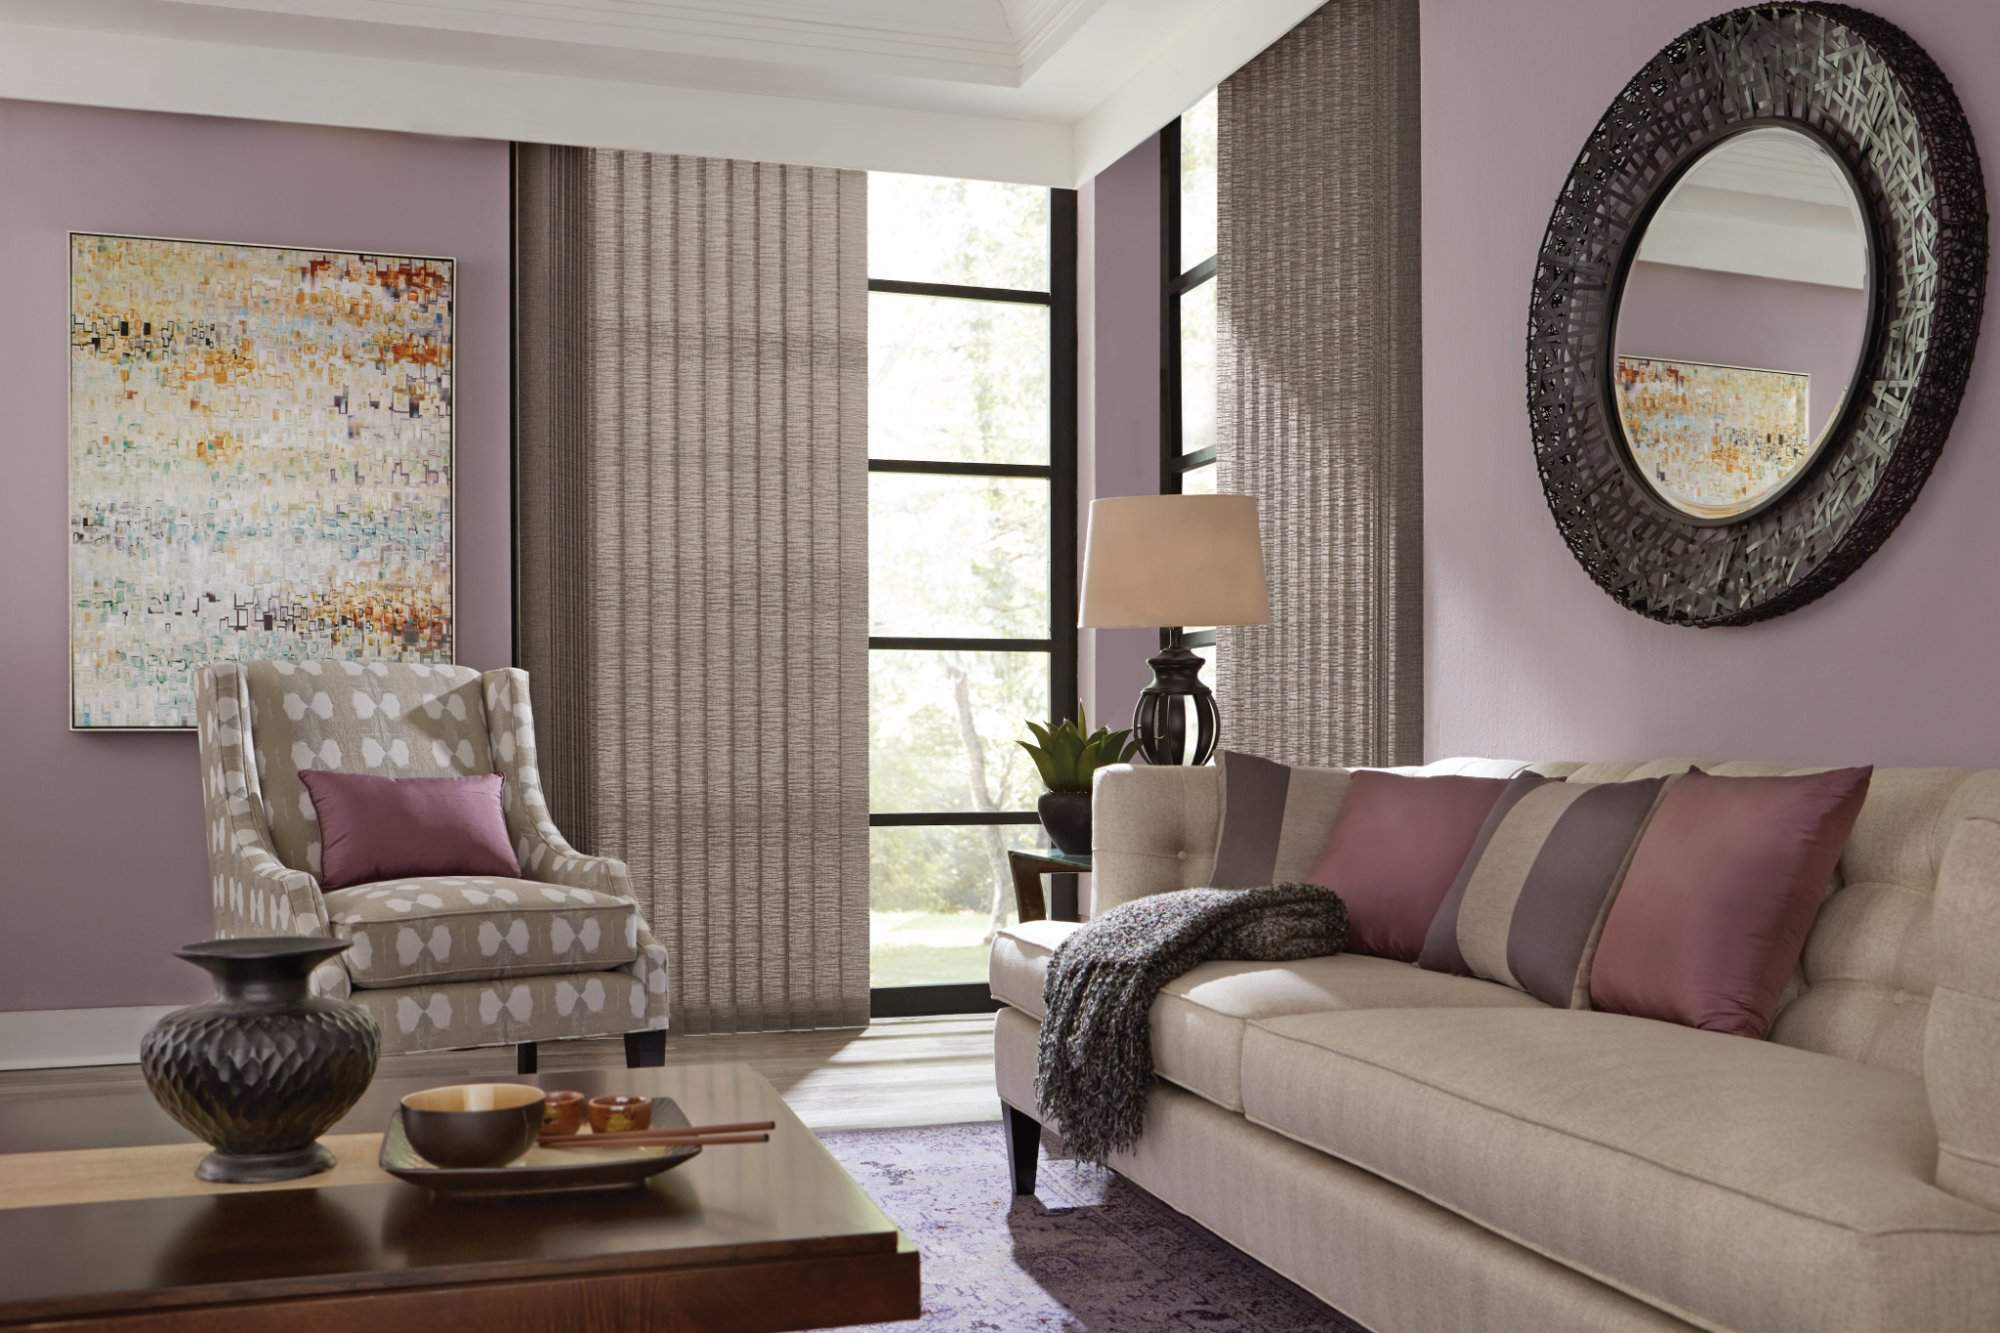 Fabric Vertical Blind with Cord and Chain Control Urban, Loft Rooftop